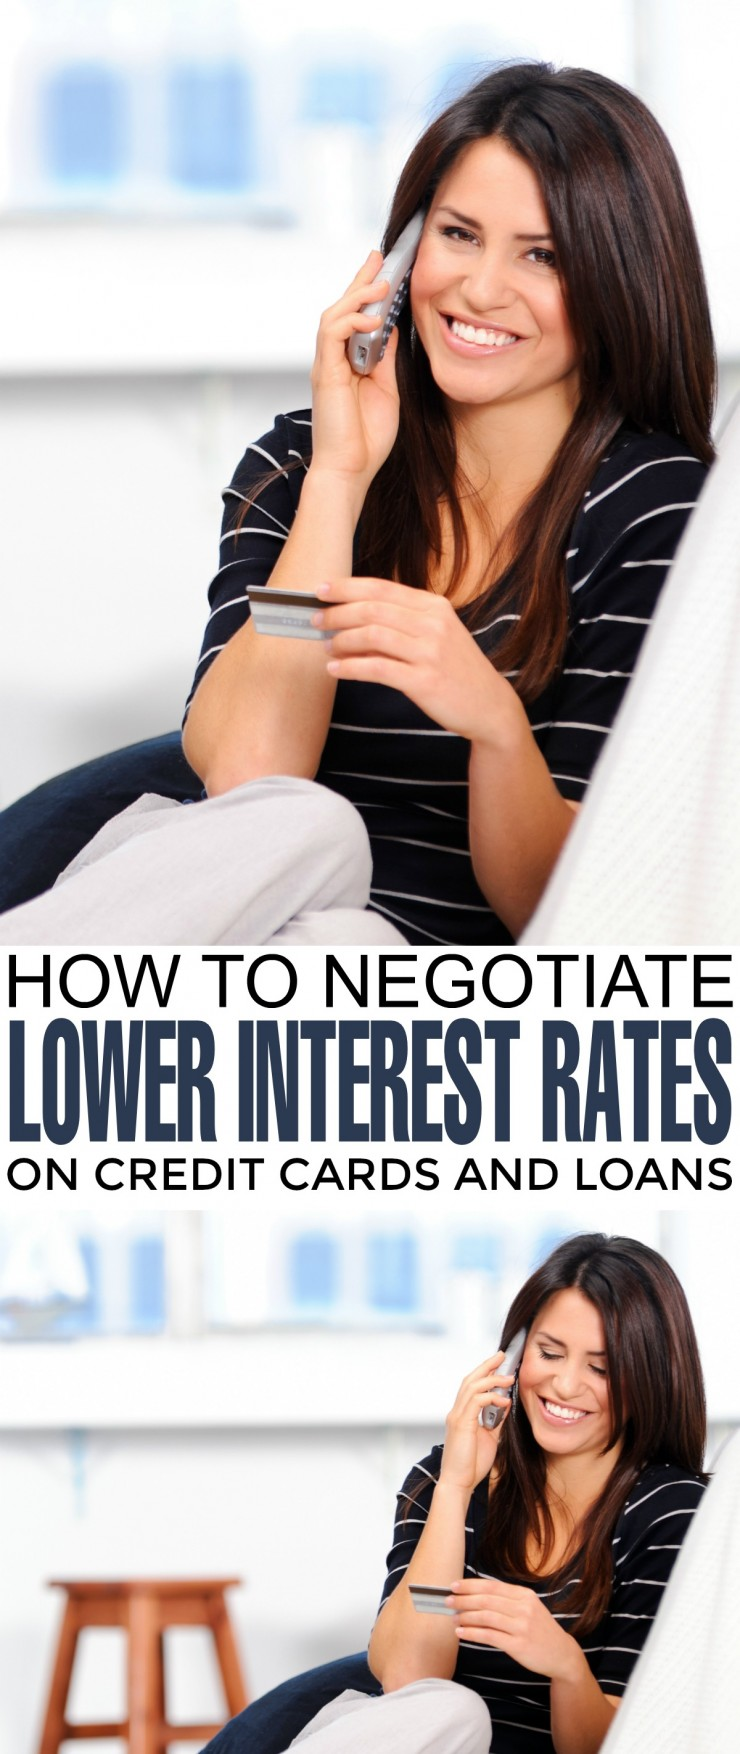 How to Negotiate Lower Interest Rates on Credit Cards and Loans